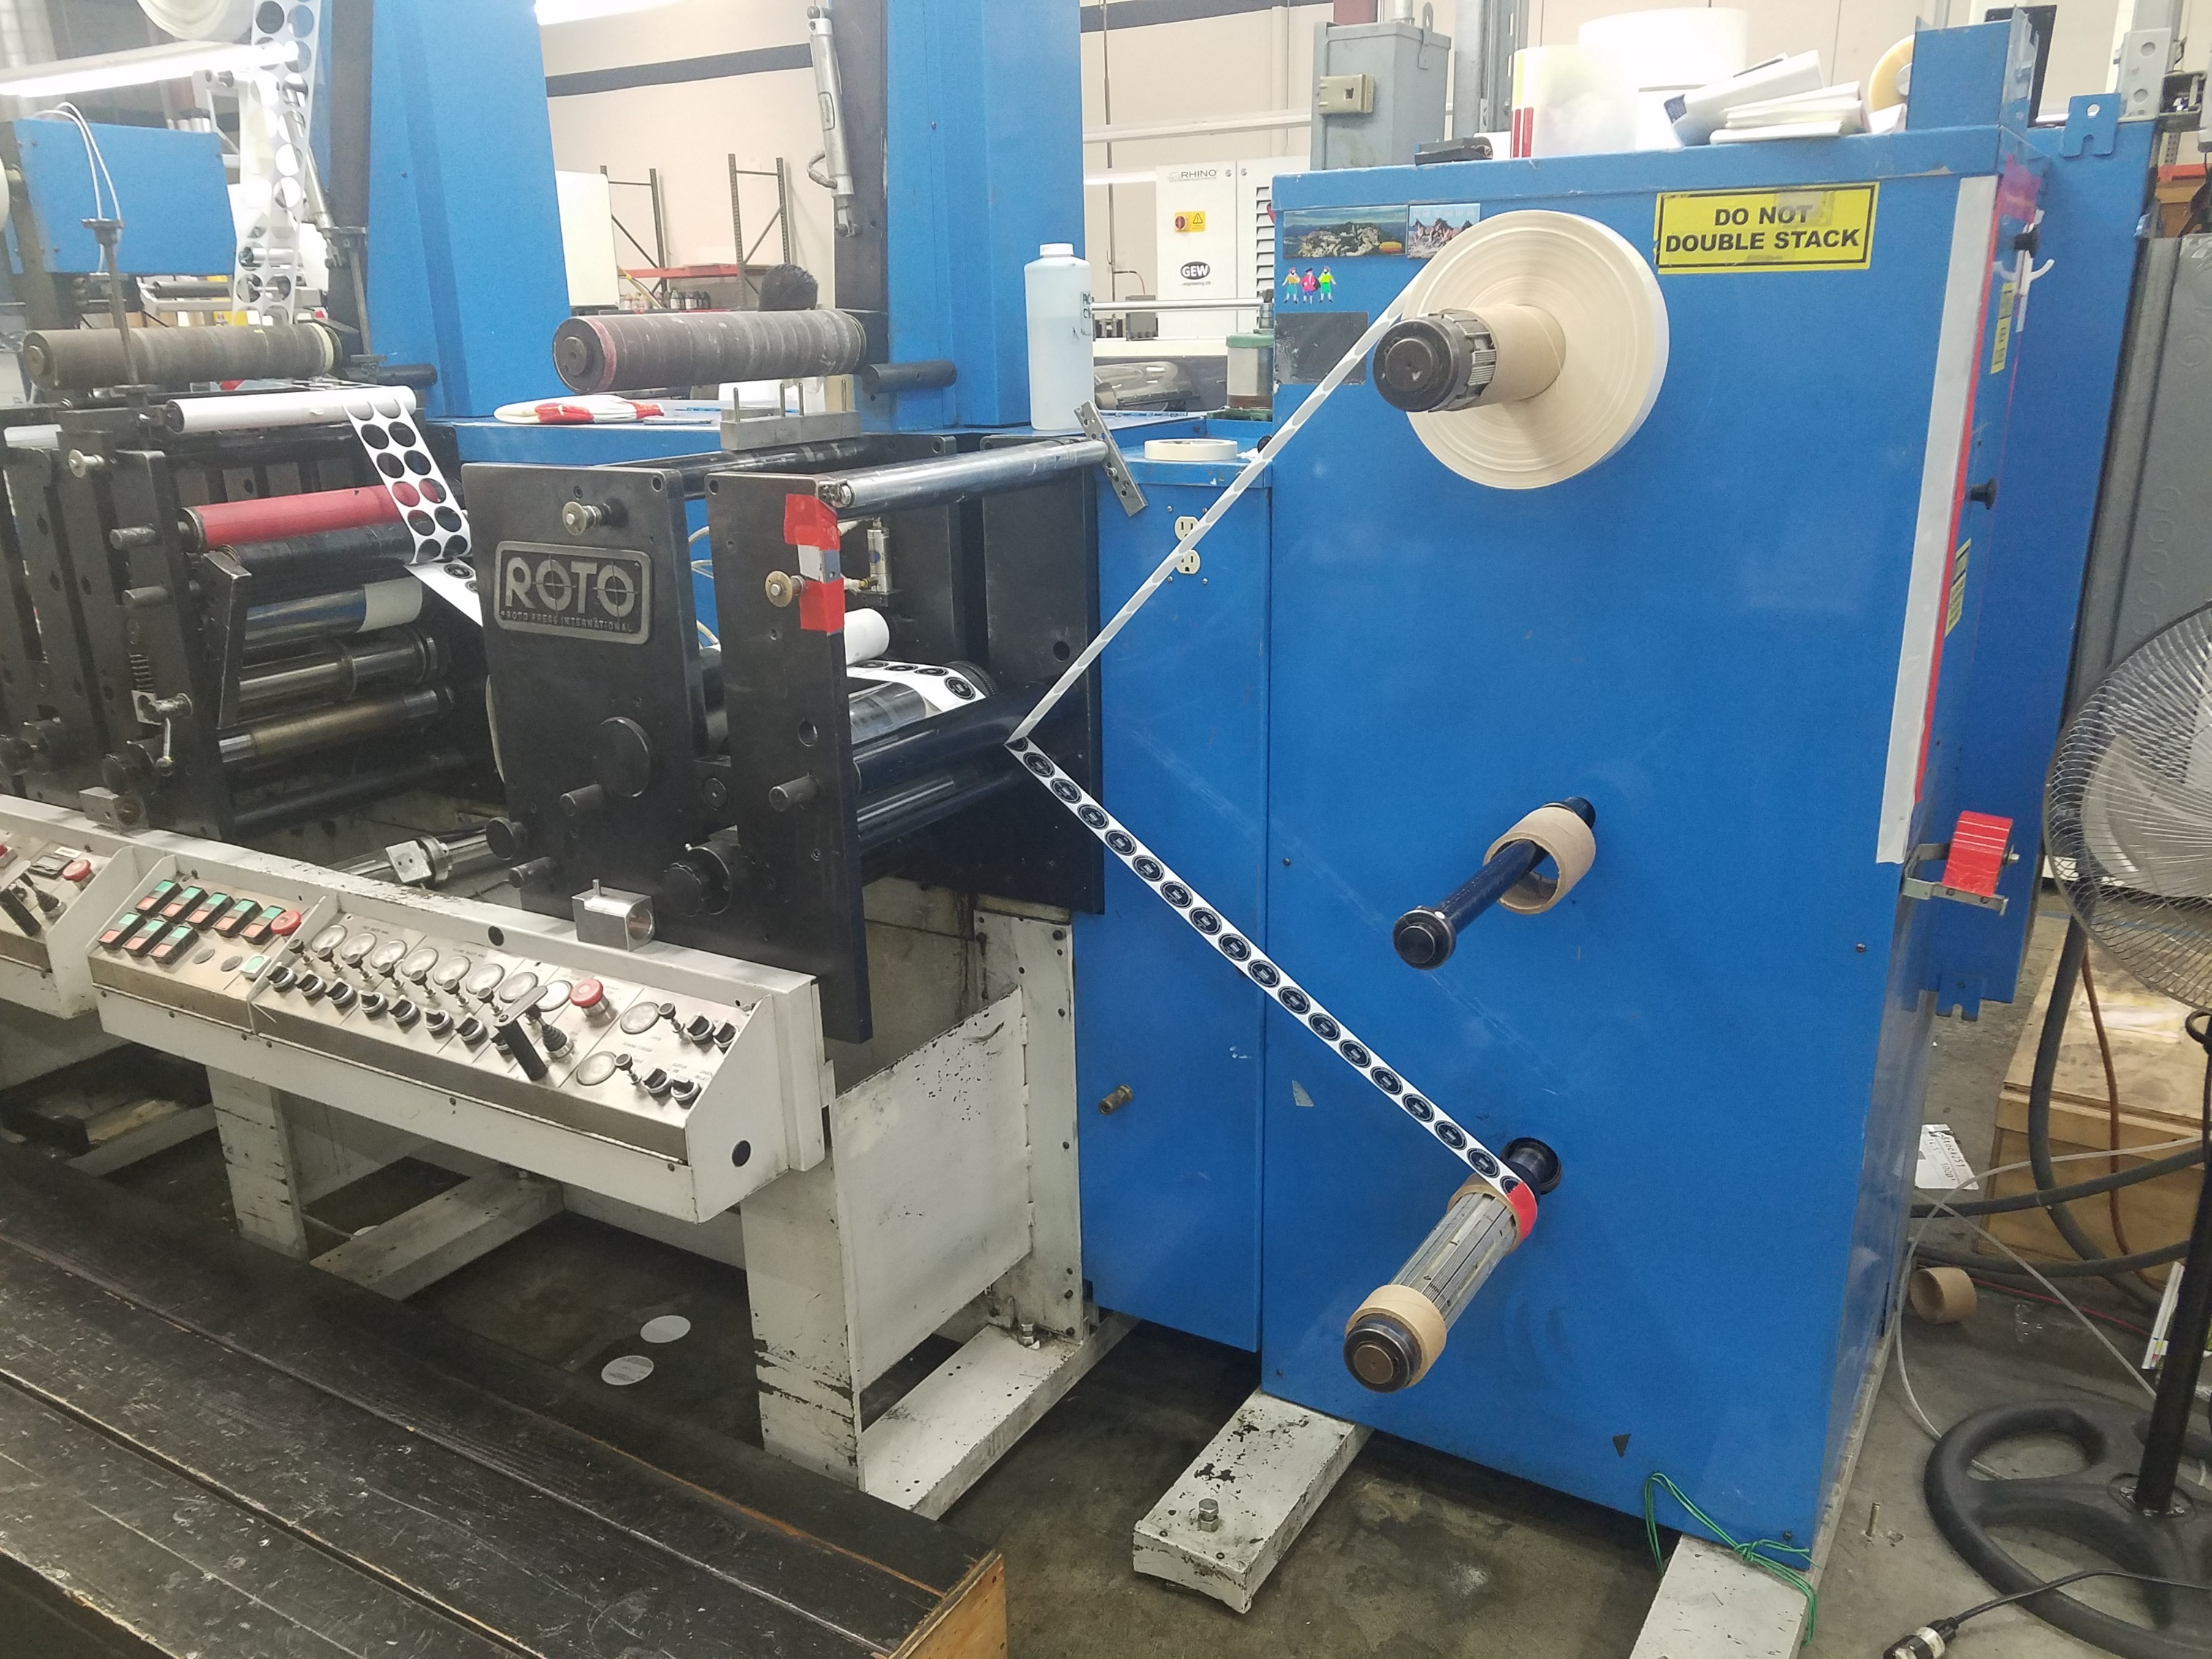 Rotopress - Used Flexo Printing Presses and Used Flexographic Equipment-3